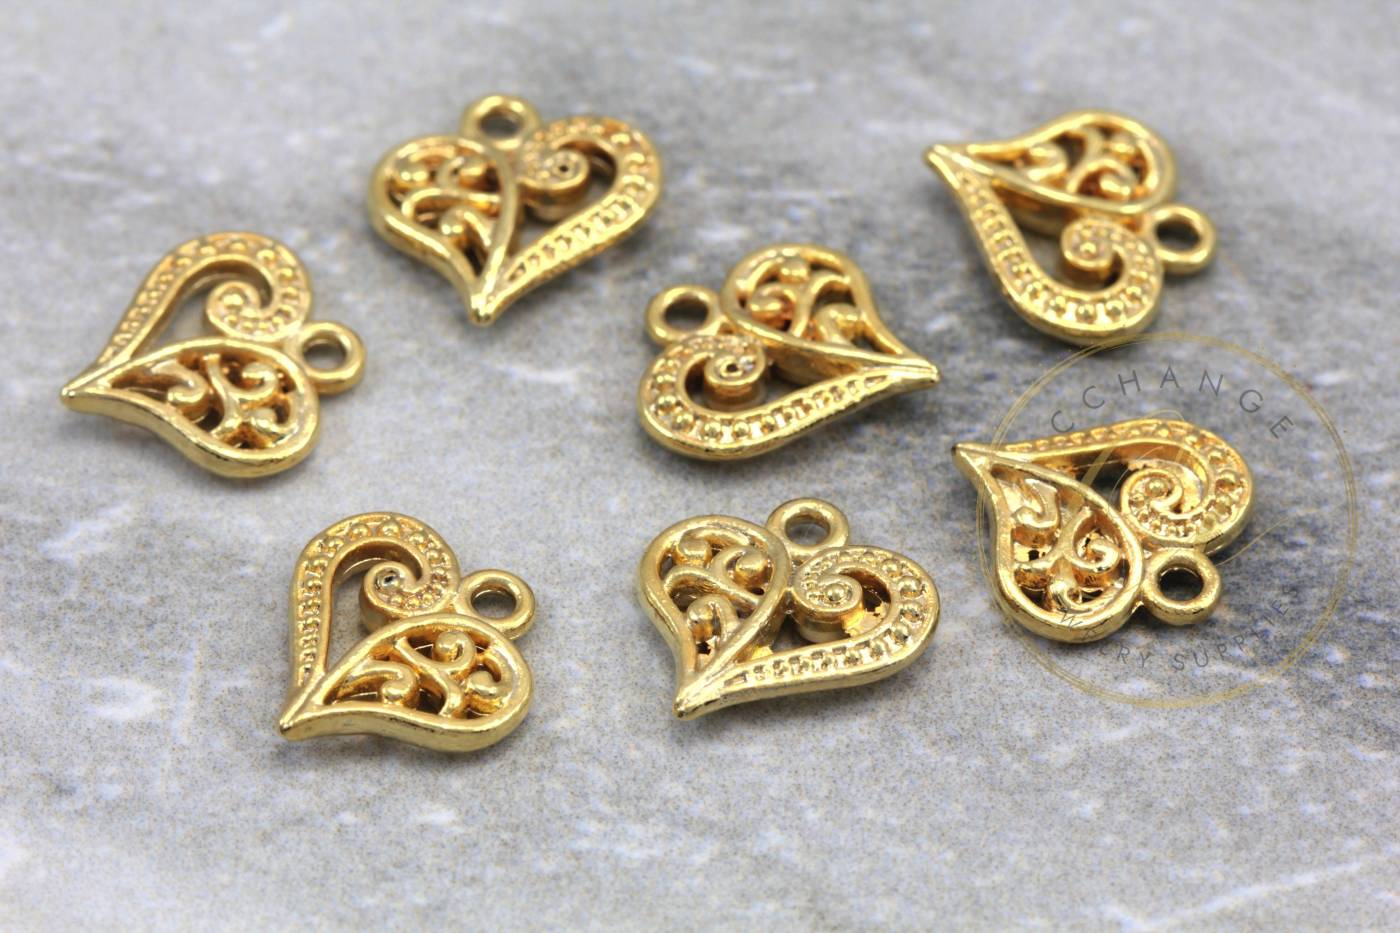 gold-metal-heart-shape-jewelry-pendants.jpg